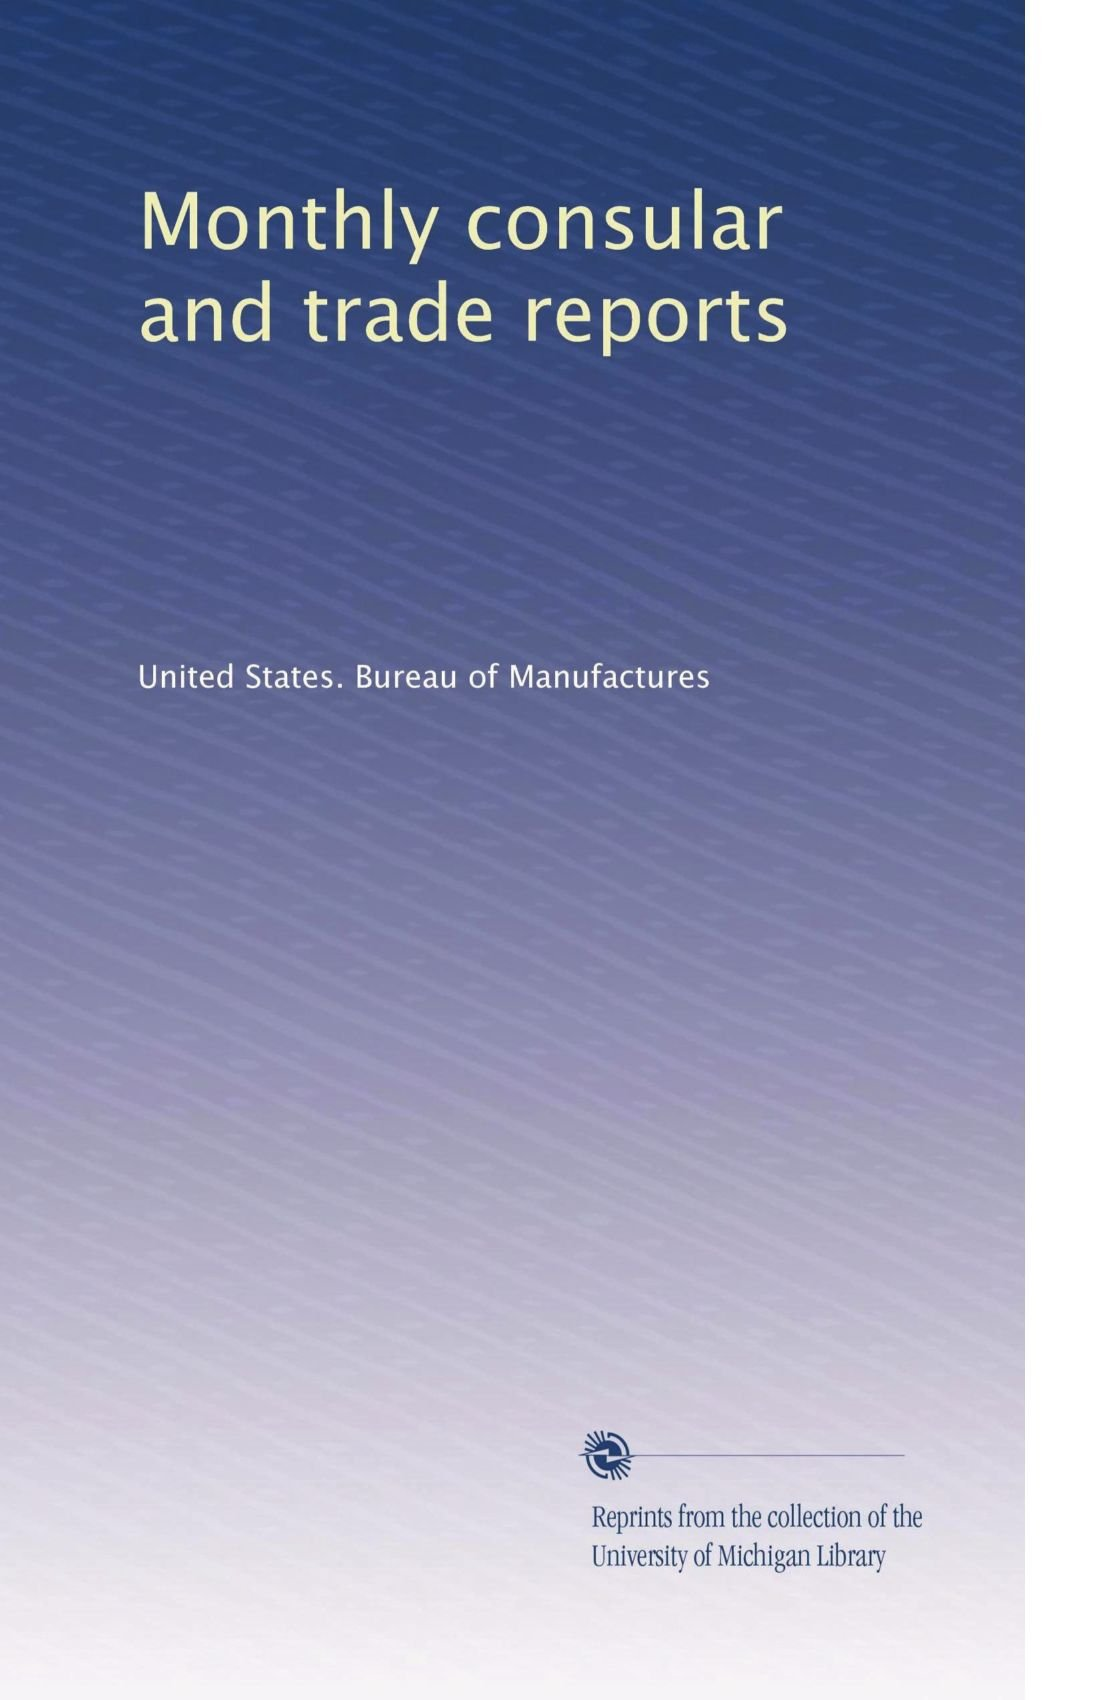 Download Monthly consular and trade reports (Volume 73) PDF